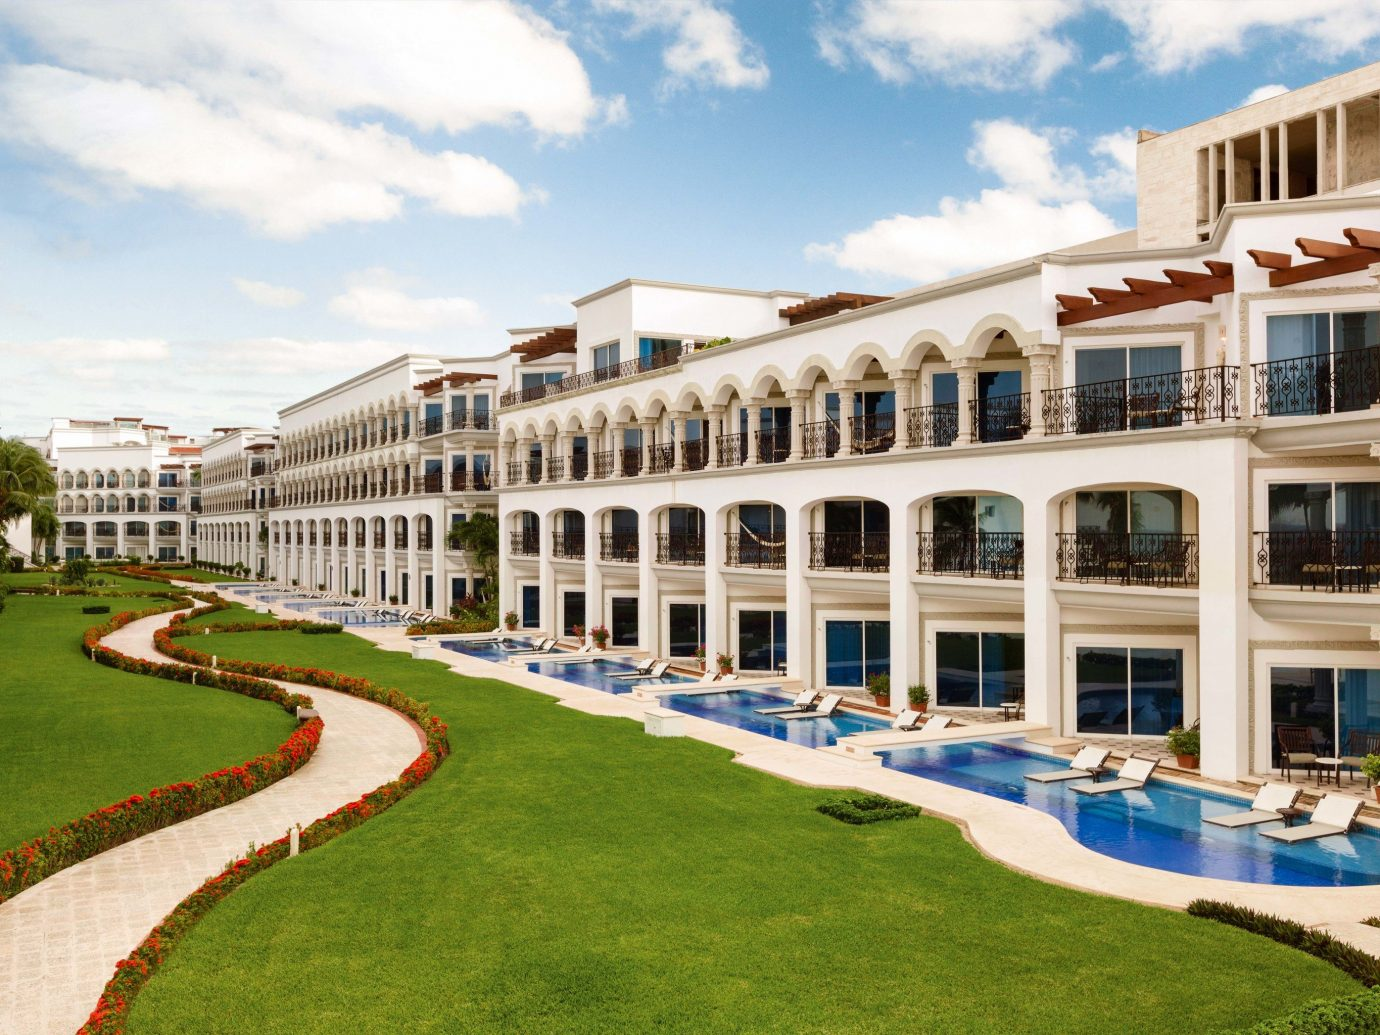 All-inclusive All-Inclusive Resorts Mexico Riviera Maya, Mexico property mixed use condominium residential area Resort apartment real estate neighbourhood estate building hotel facade corporate headquarters